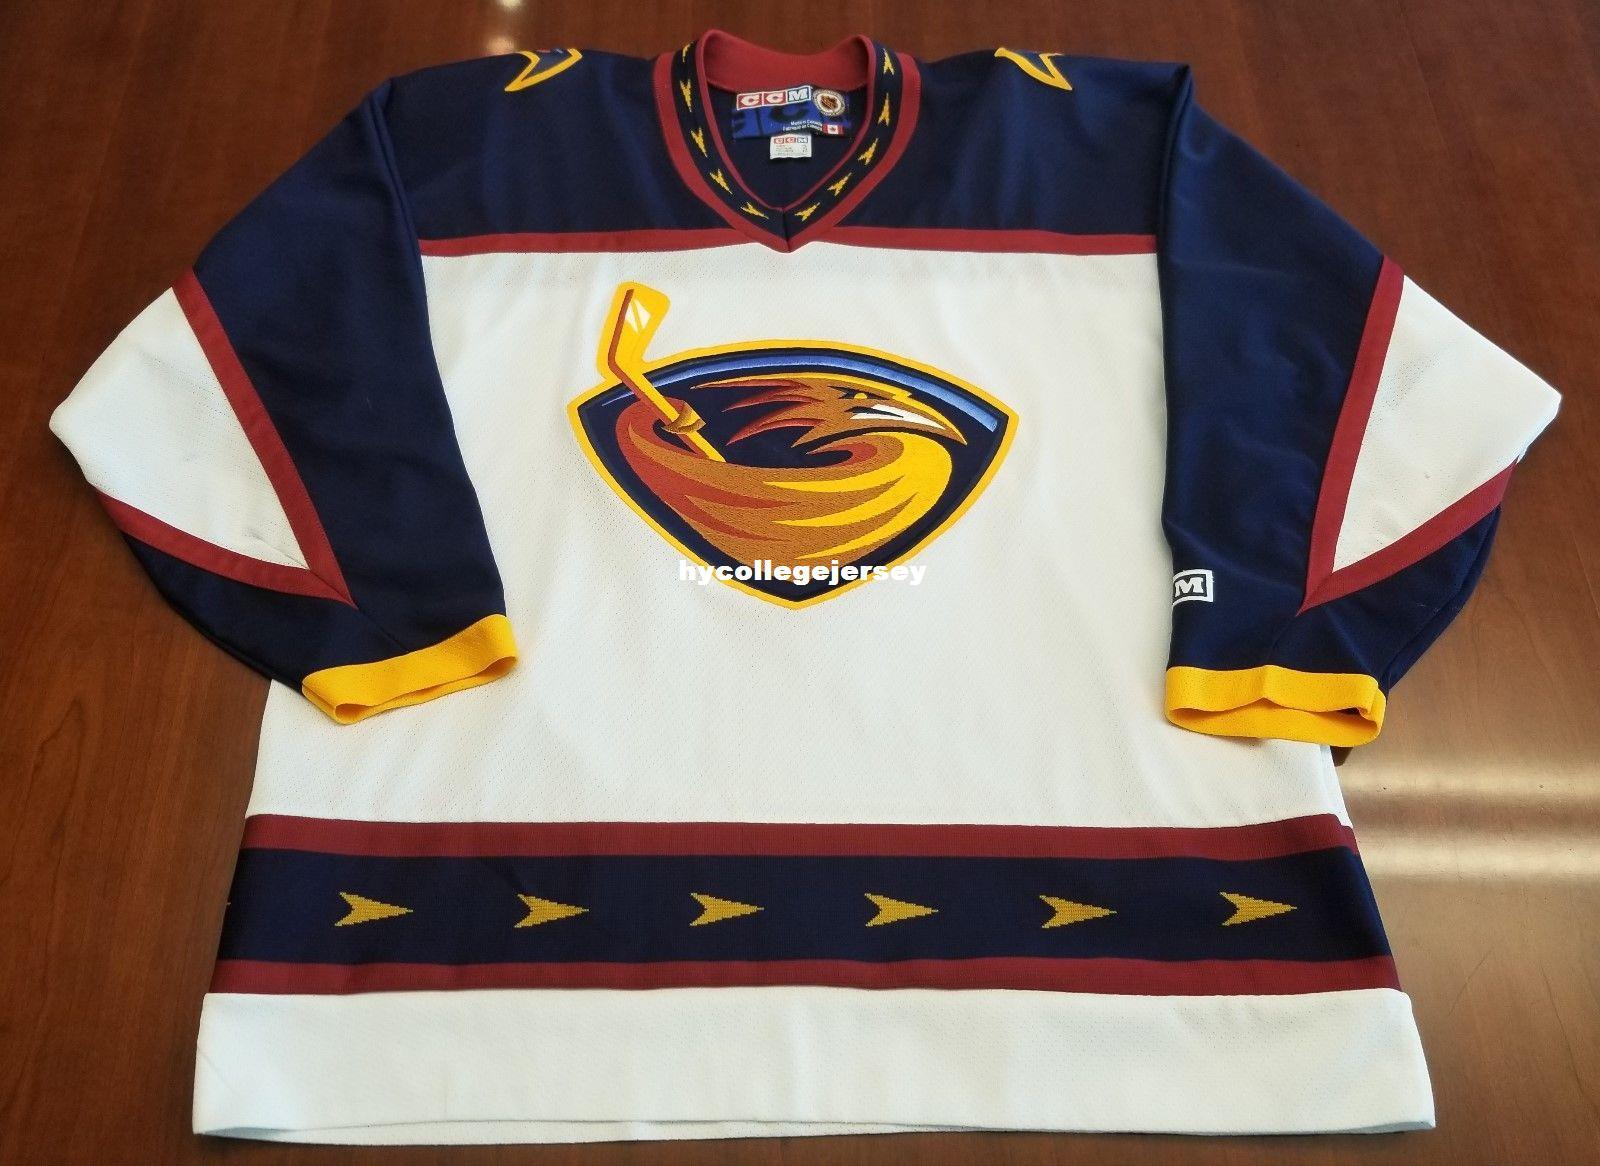 2018 Wholesale Custom Atlanta Vintage CCM Cheap Hockey Jersey White Mens Retro  Jerseys From Hycollegejersey c8a83e56c